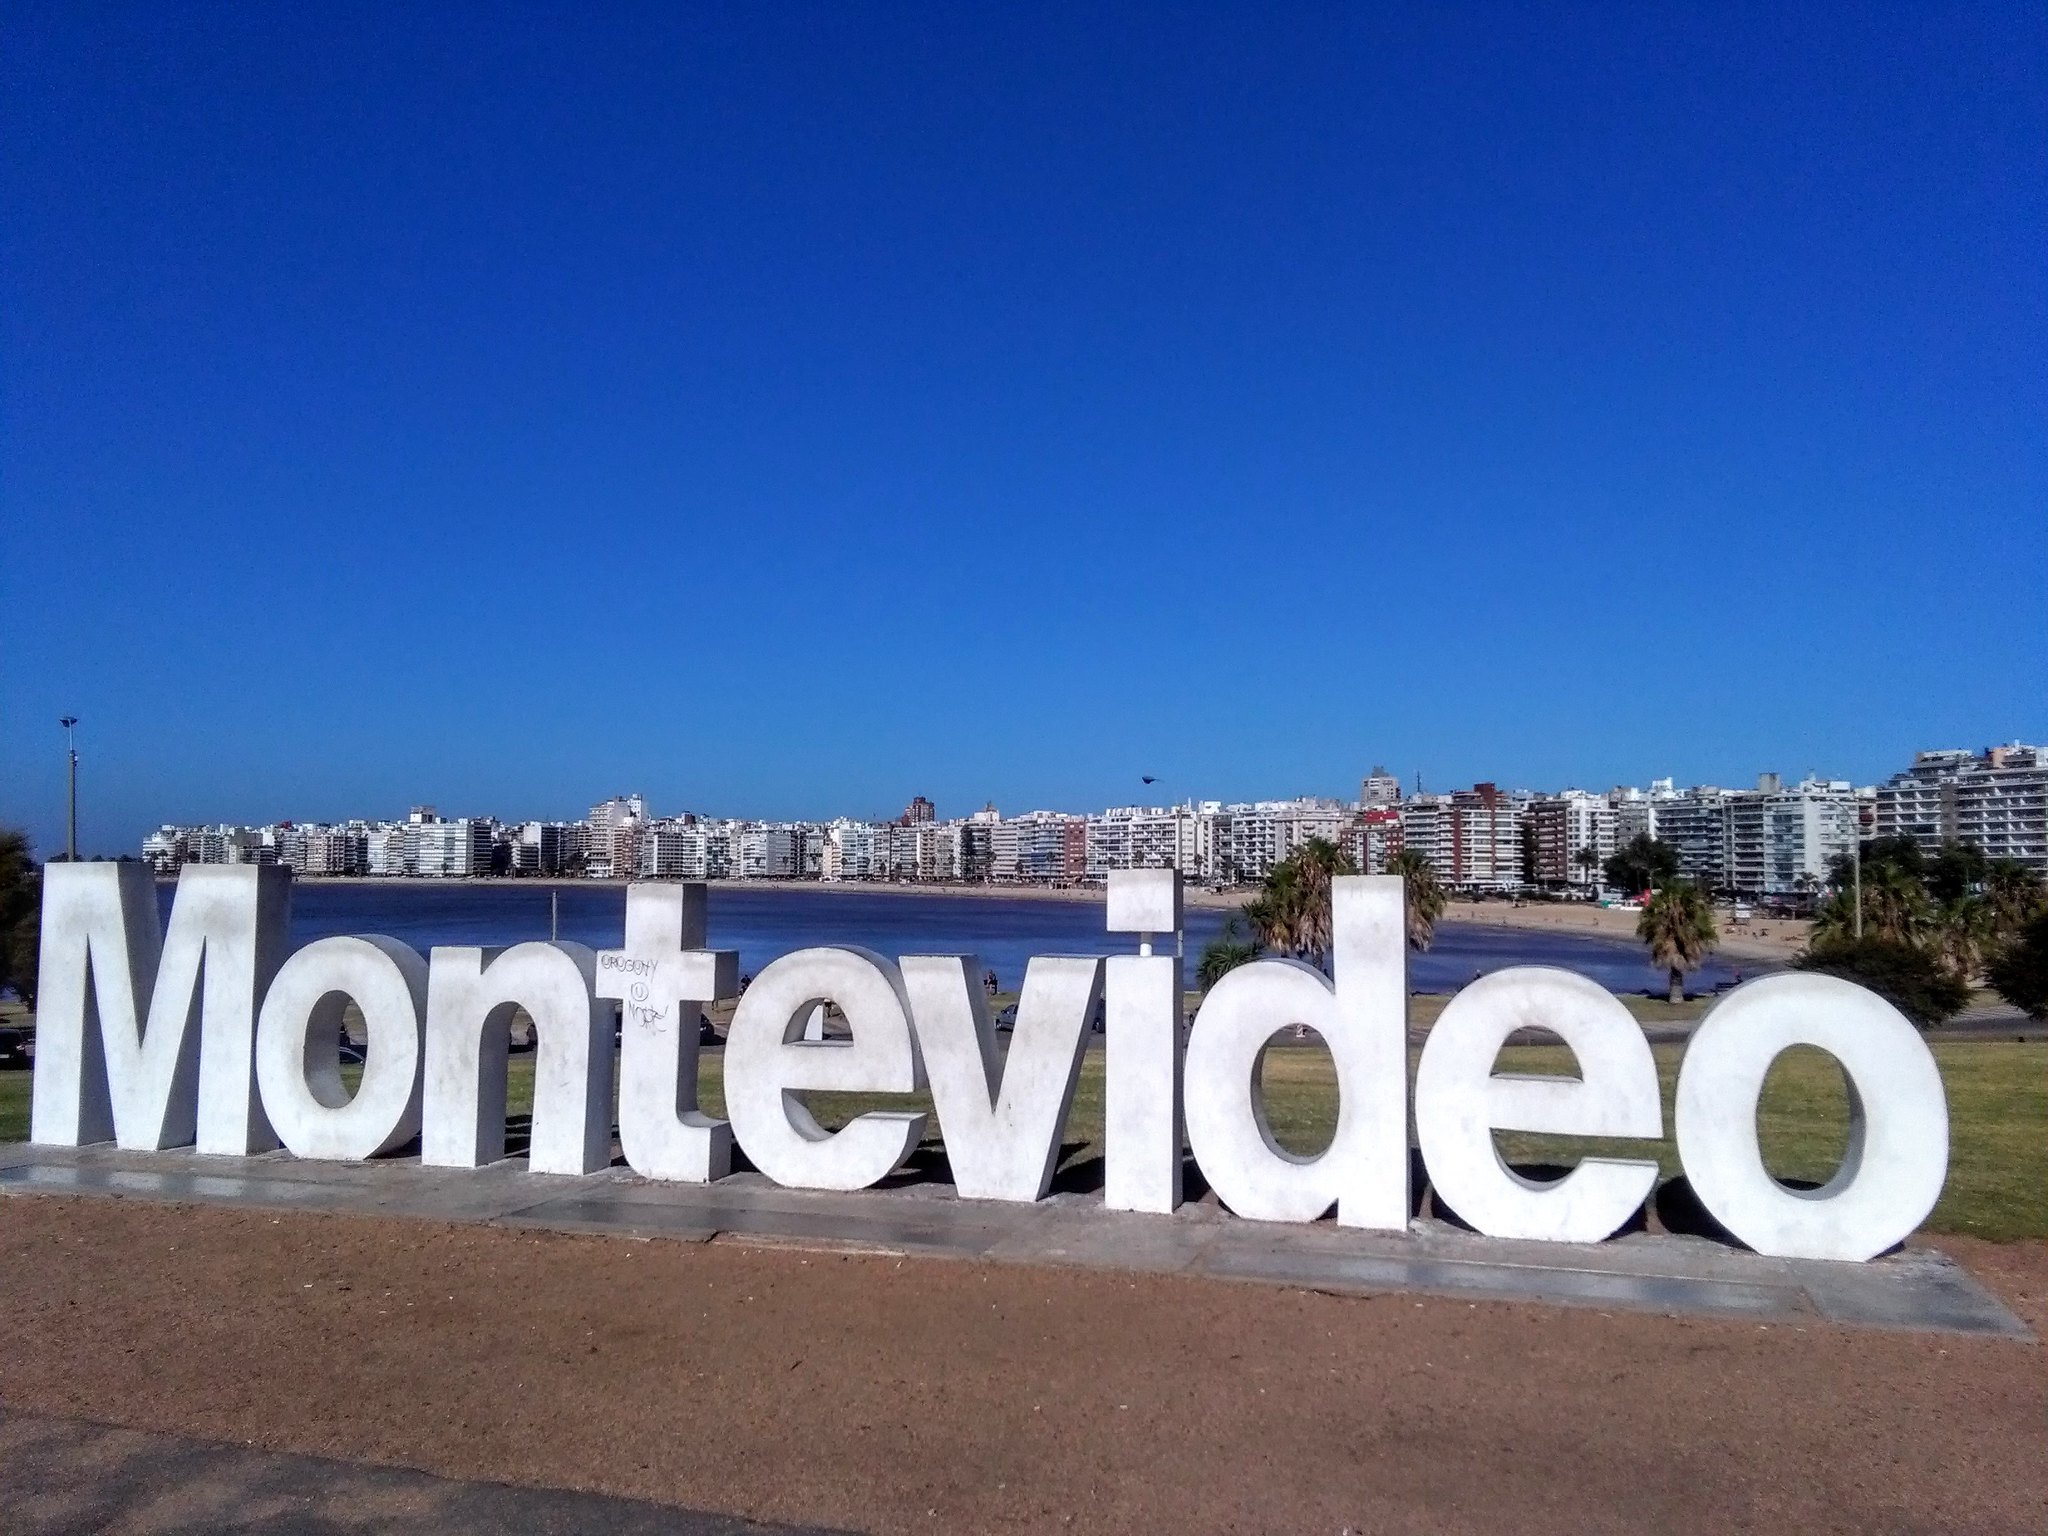 The Montevideo sign